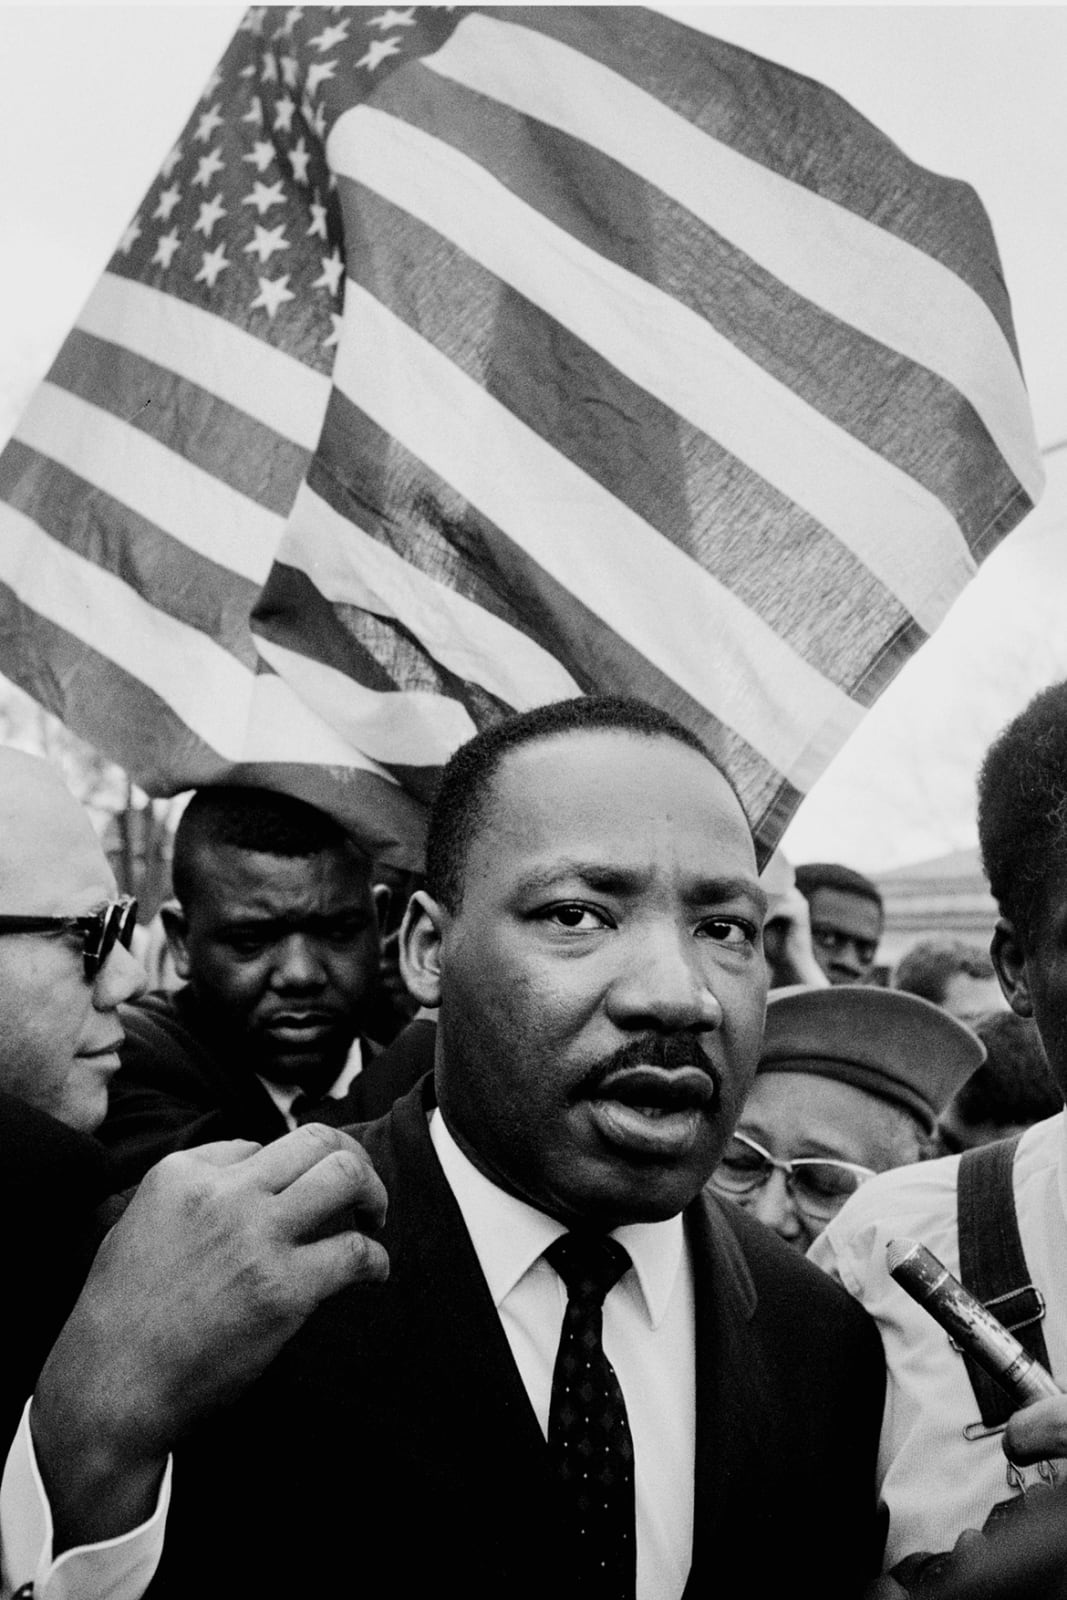 Steve Schapiro Martin Luther King Jr. (with Flag), Selma March, 1965